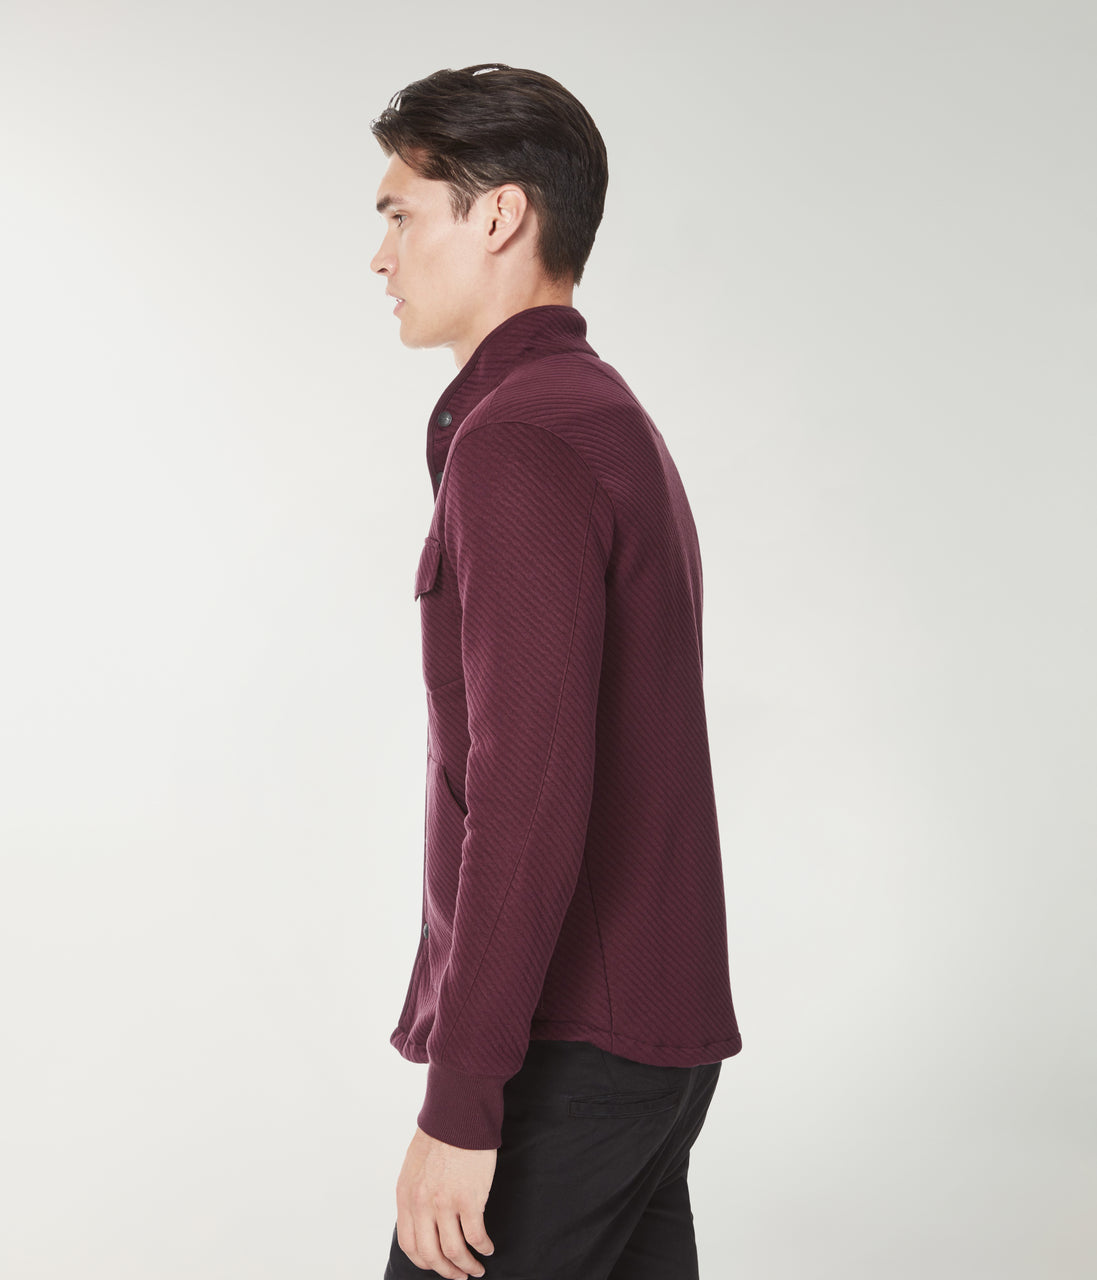 Fuji Shirt Jacket in Twill Quilt Jacquard - Wine - Good Man Brand - Fuji Shirt Jacket in Twill Quilt Jacquard - Wine